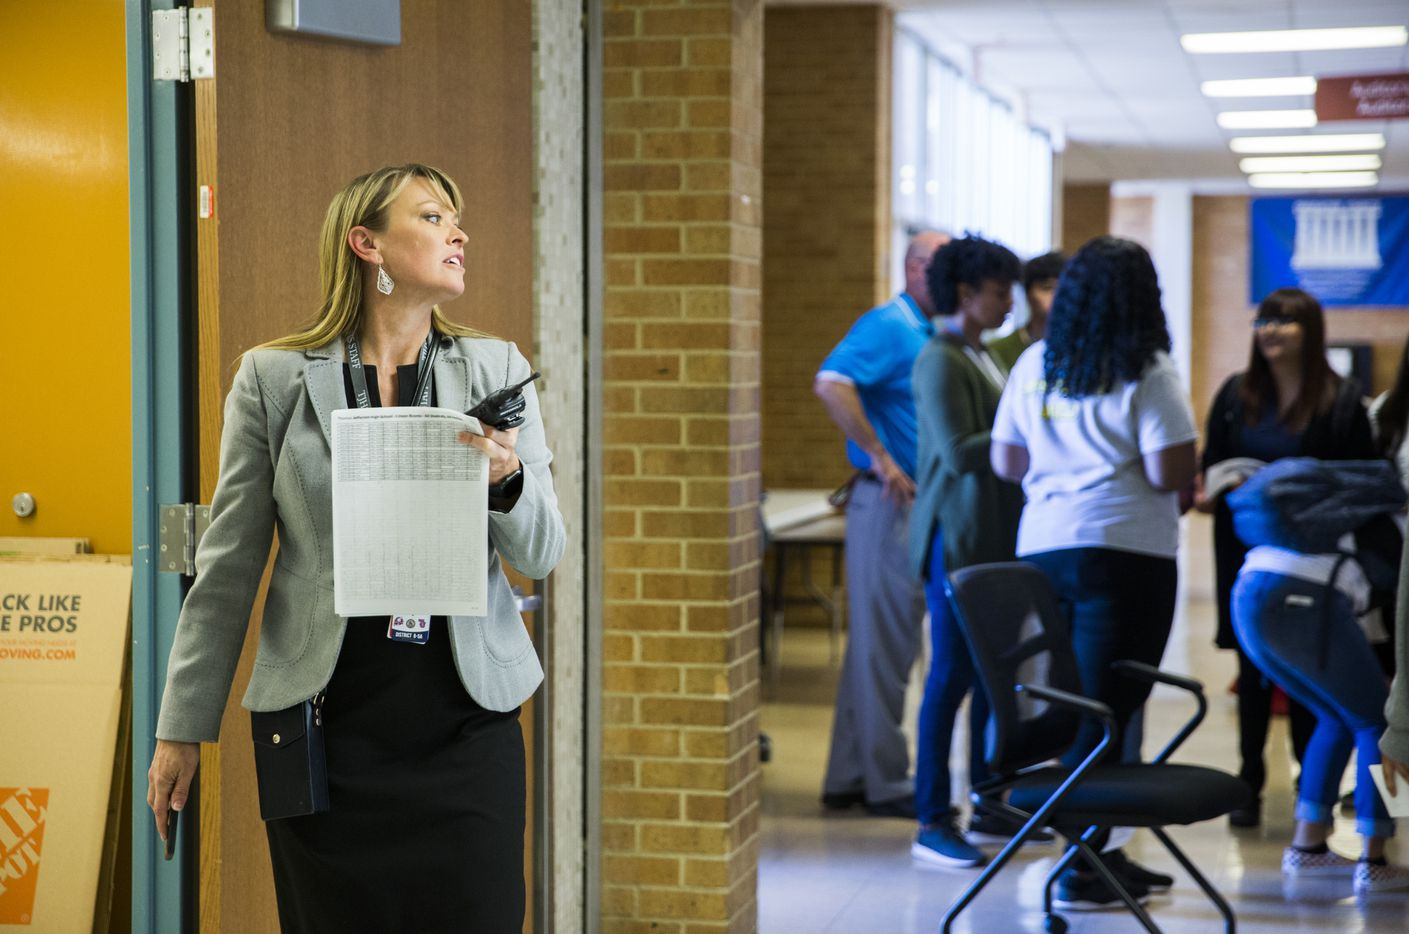 Thomas Jefferson High School Principal Sandi Massey supervises students as they make their way to their next class at Thomas A. Edison Middle School, where they started classes on Wednesday, October 23, 2019 in Dallas. Jefferson High School was severely damaged when multiple tornadoes ripped through the DFW area on Sunday night. Students are expected to have classes at the Edison campus for the rest of the school year. (Ashley Landis/The Dallas Morning News)